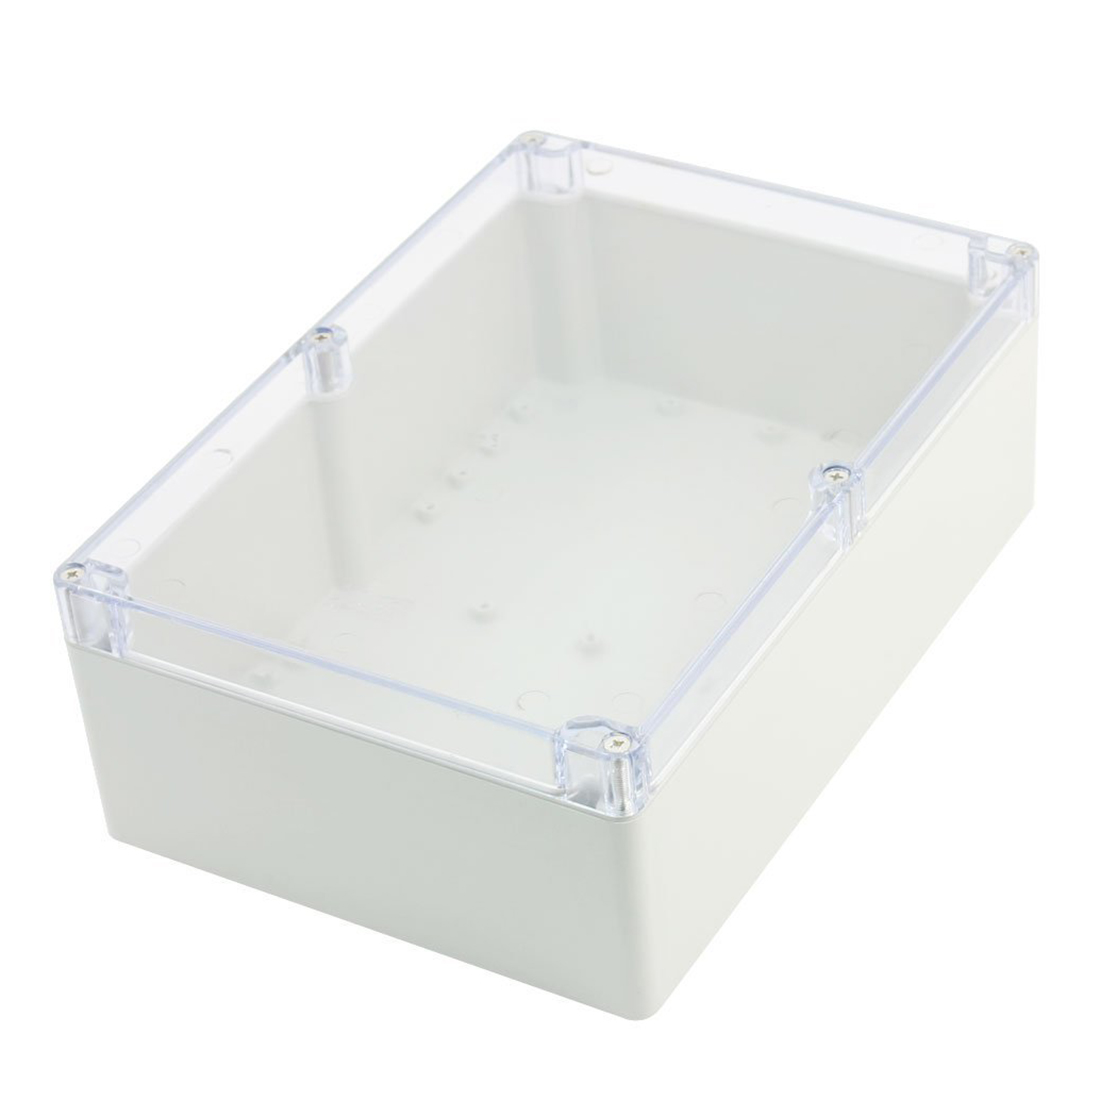 265mmx185mmx95mm Power Cable Connector Waterproof Case Junction Box clever slideup l csu013